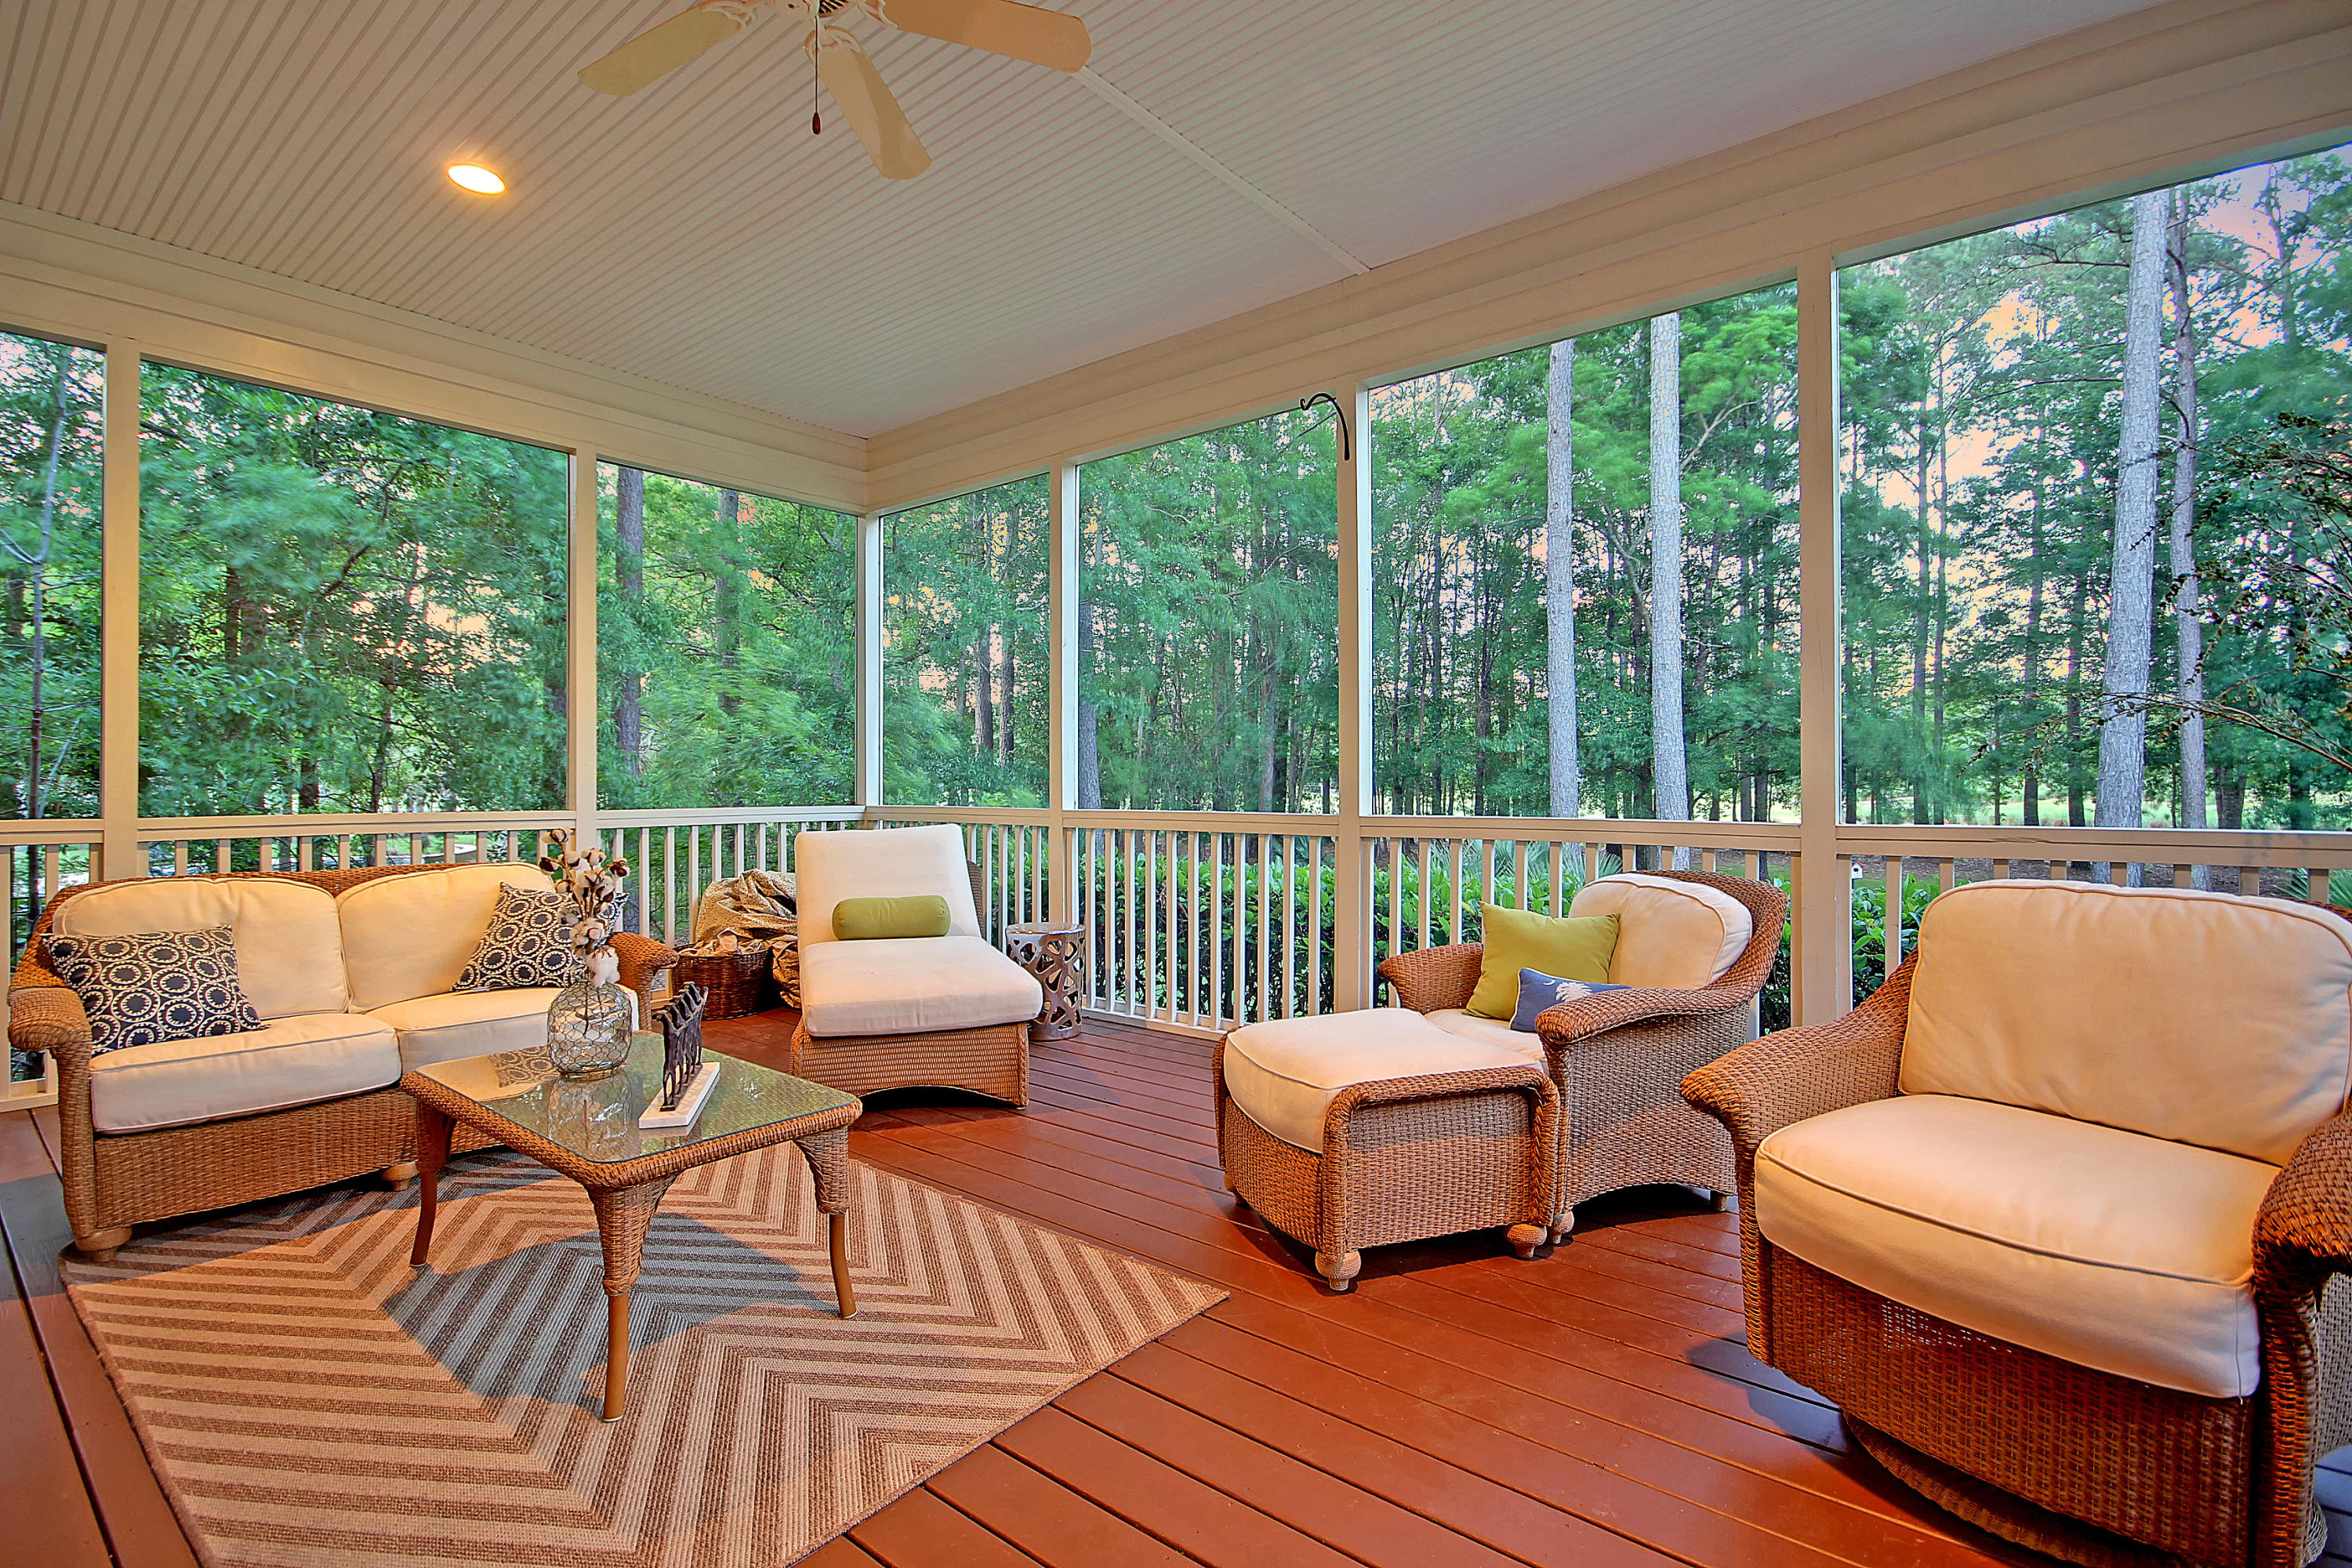 Dunes West Homes For Sale - 1829 Shell Ring, Mount Pleasant, SC - 5